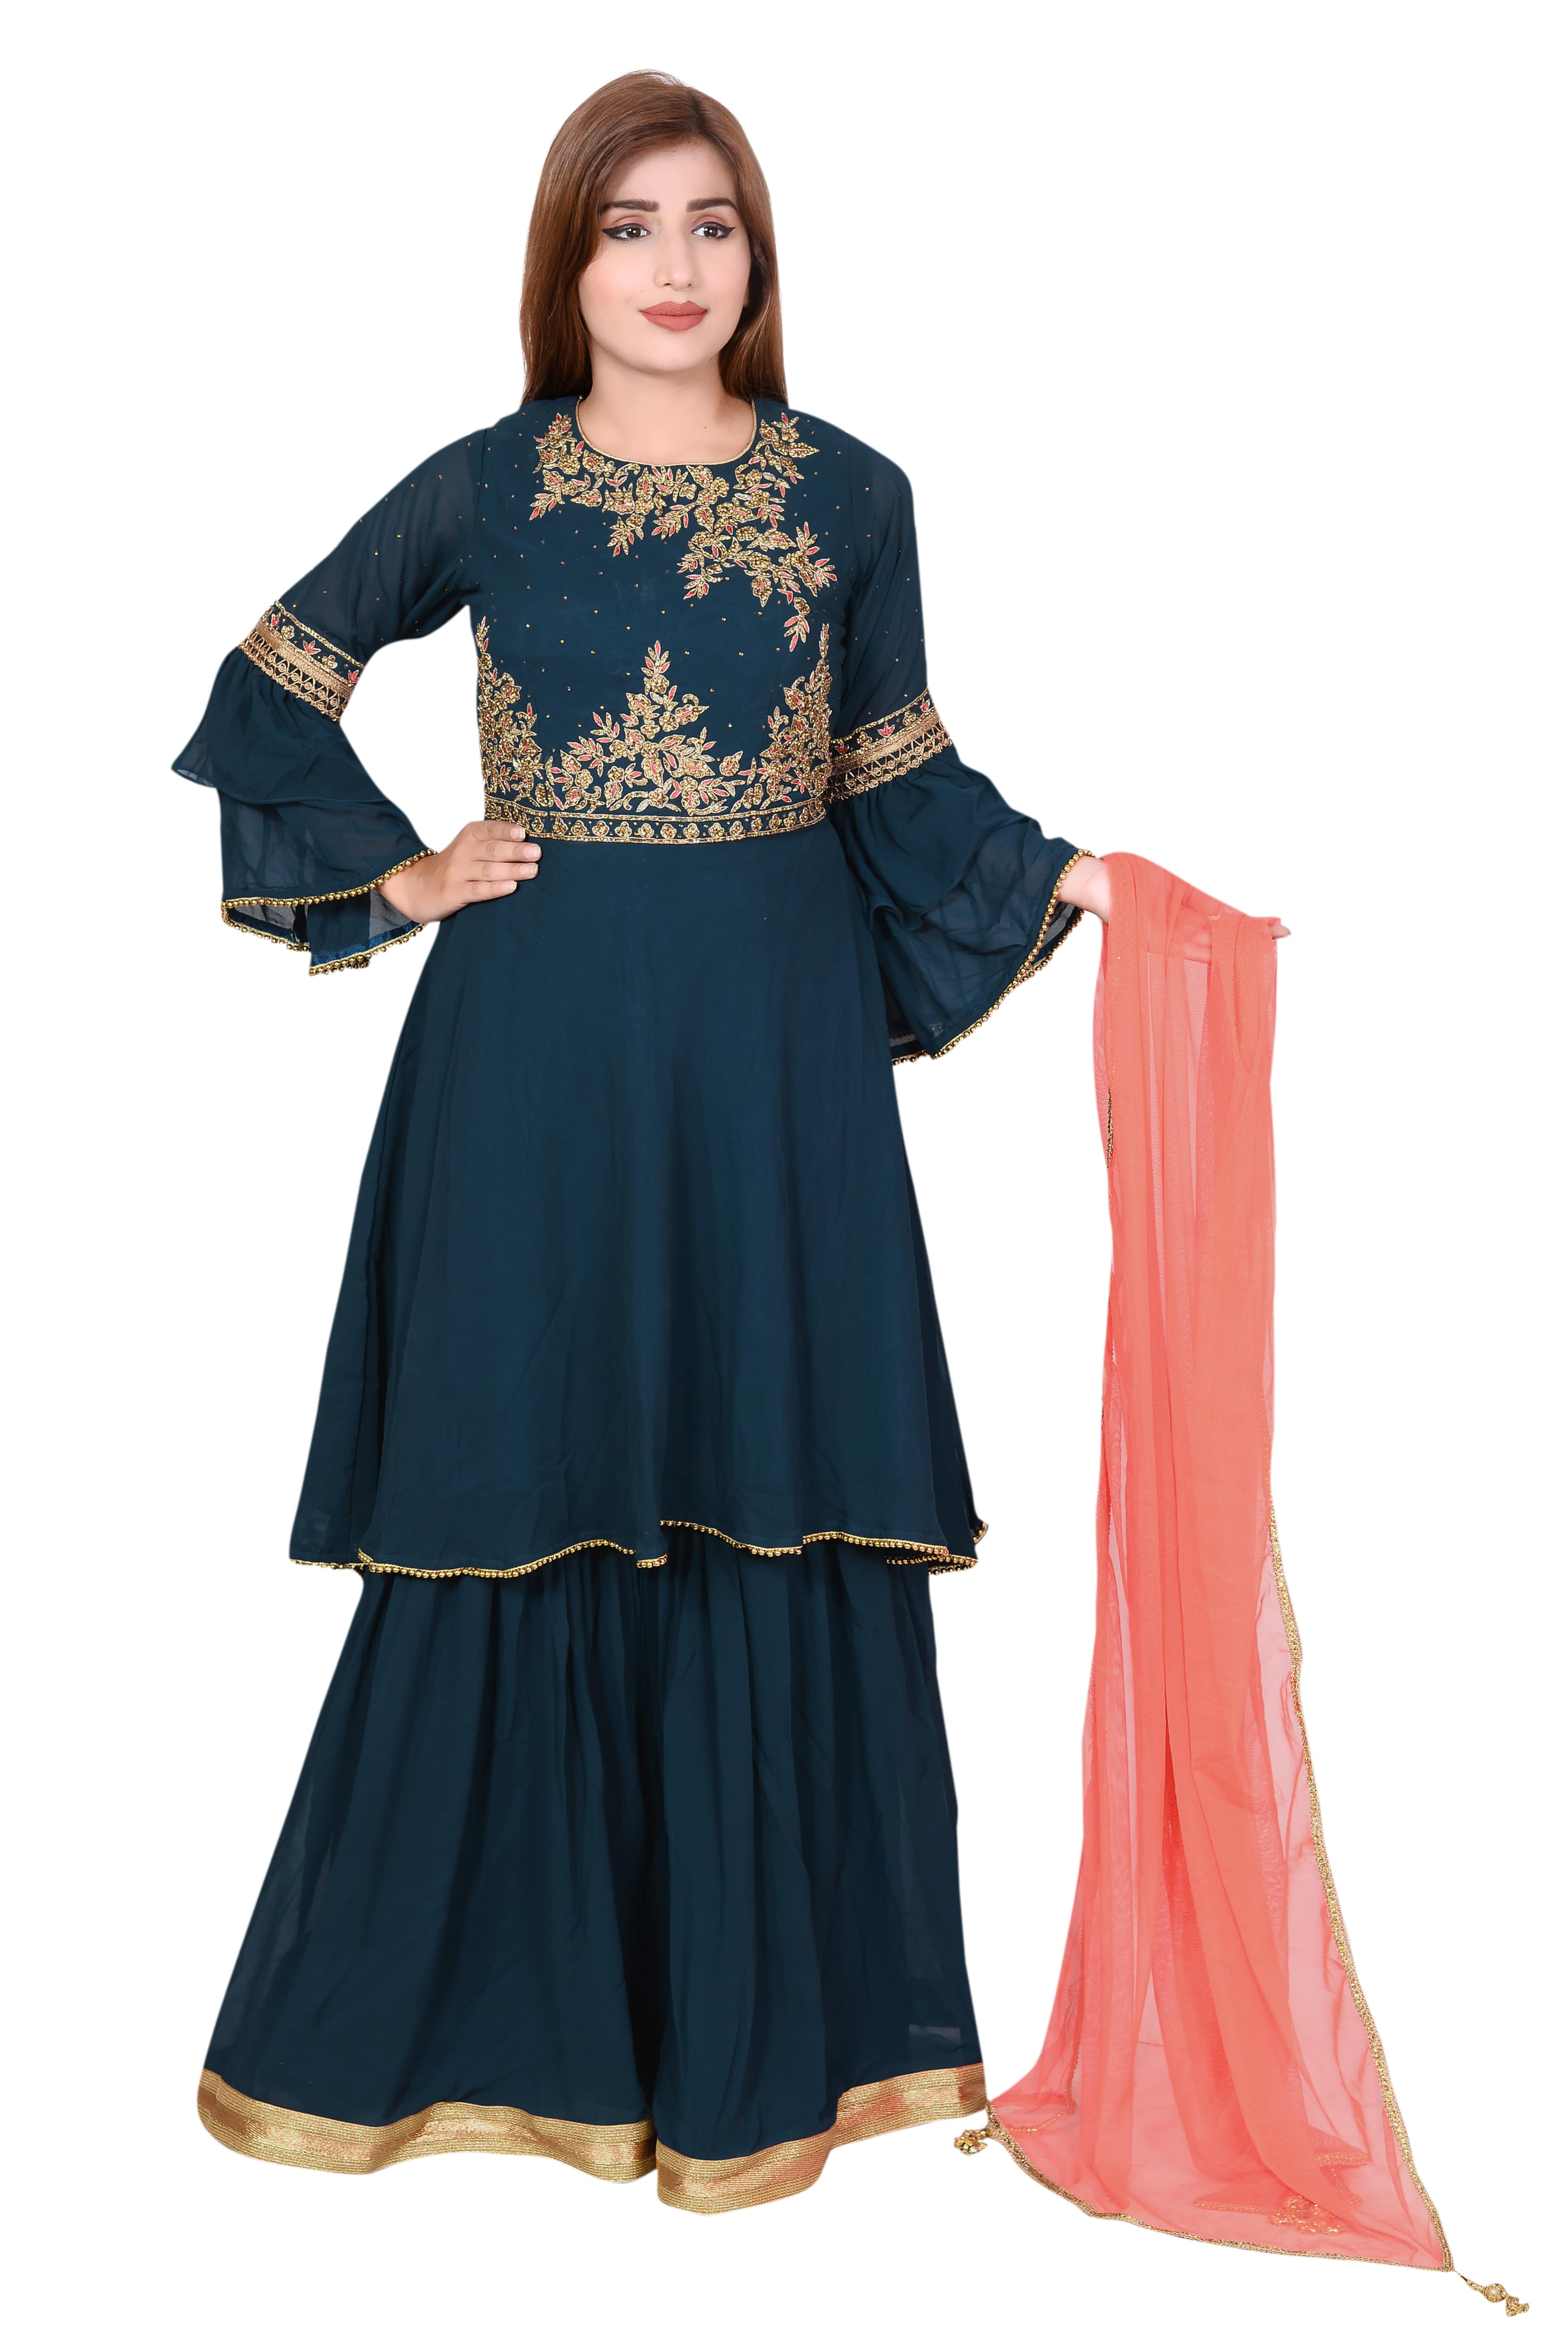 Ladies Ethnic Wear In Meerut